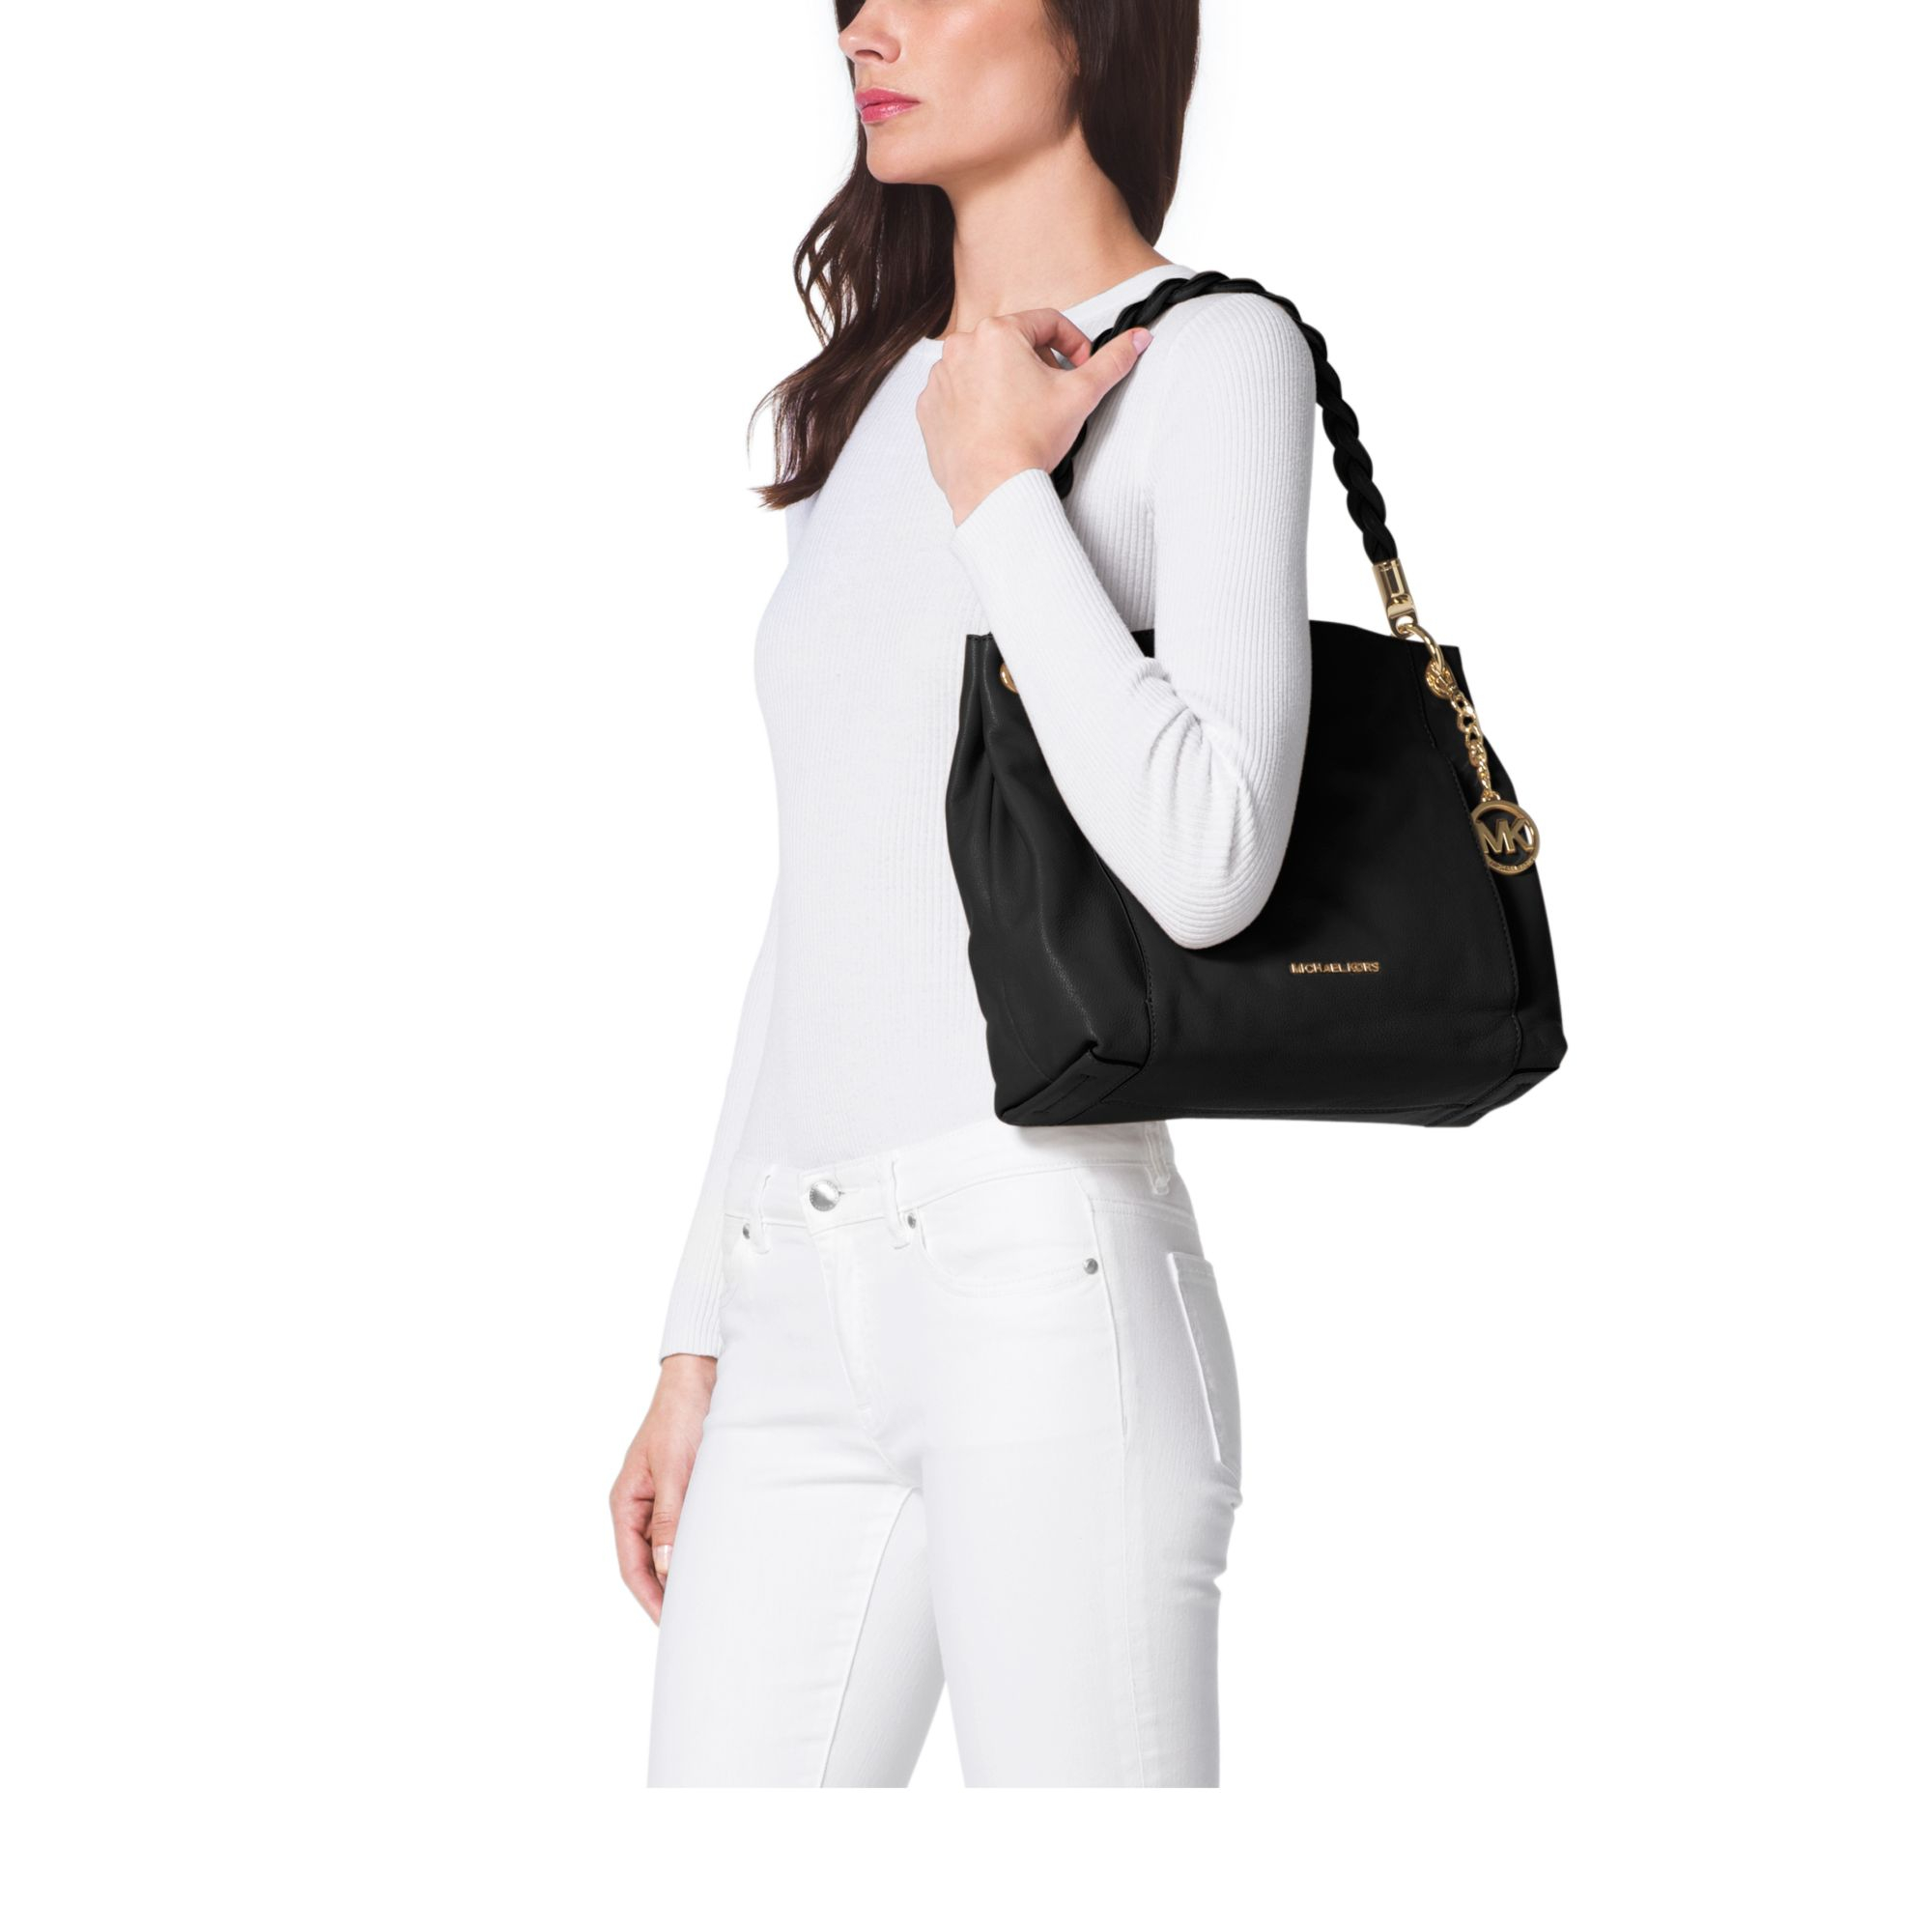 8f5c7c69b1a1 ... large tote gold nwt 348 96e45 ca4b5; cheap lyst michael kors naomi  leather top handle bag in black a81c3 ce427